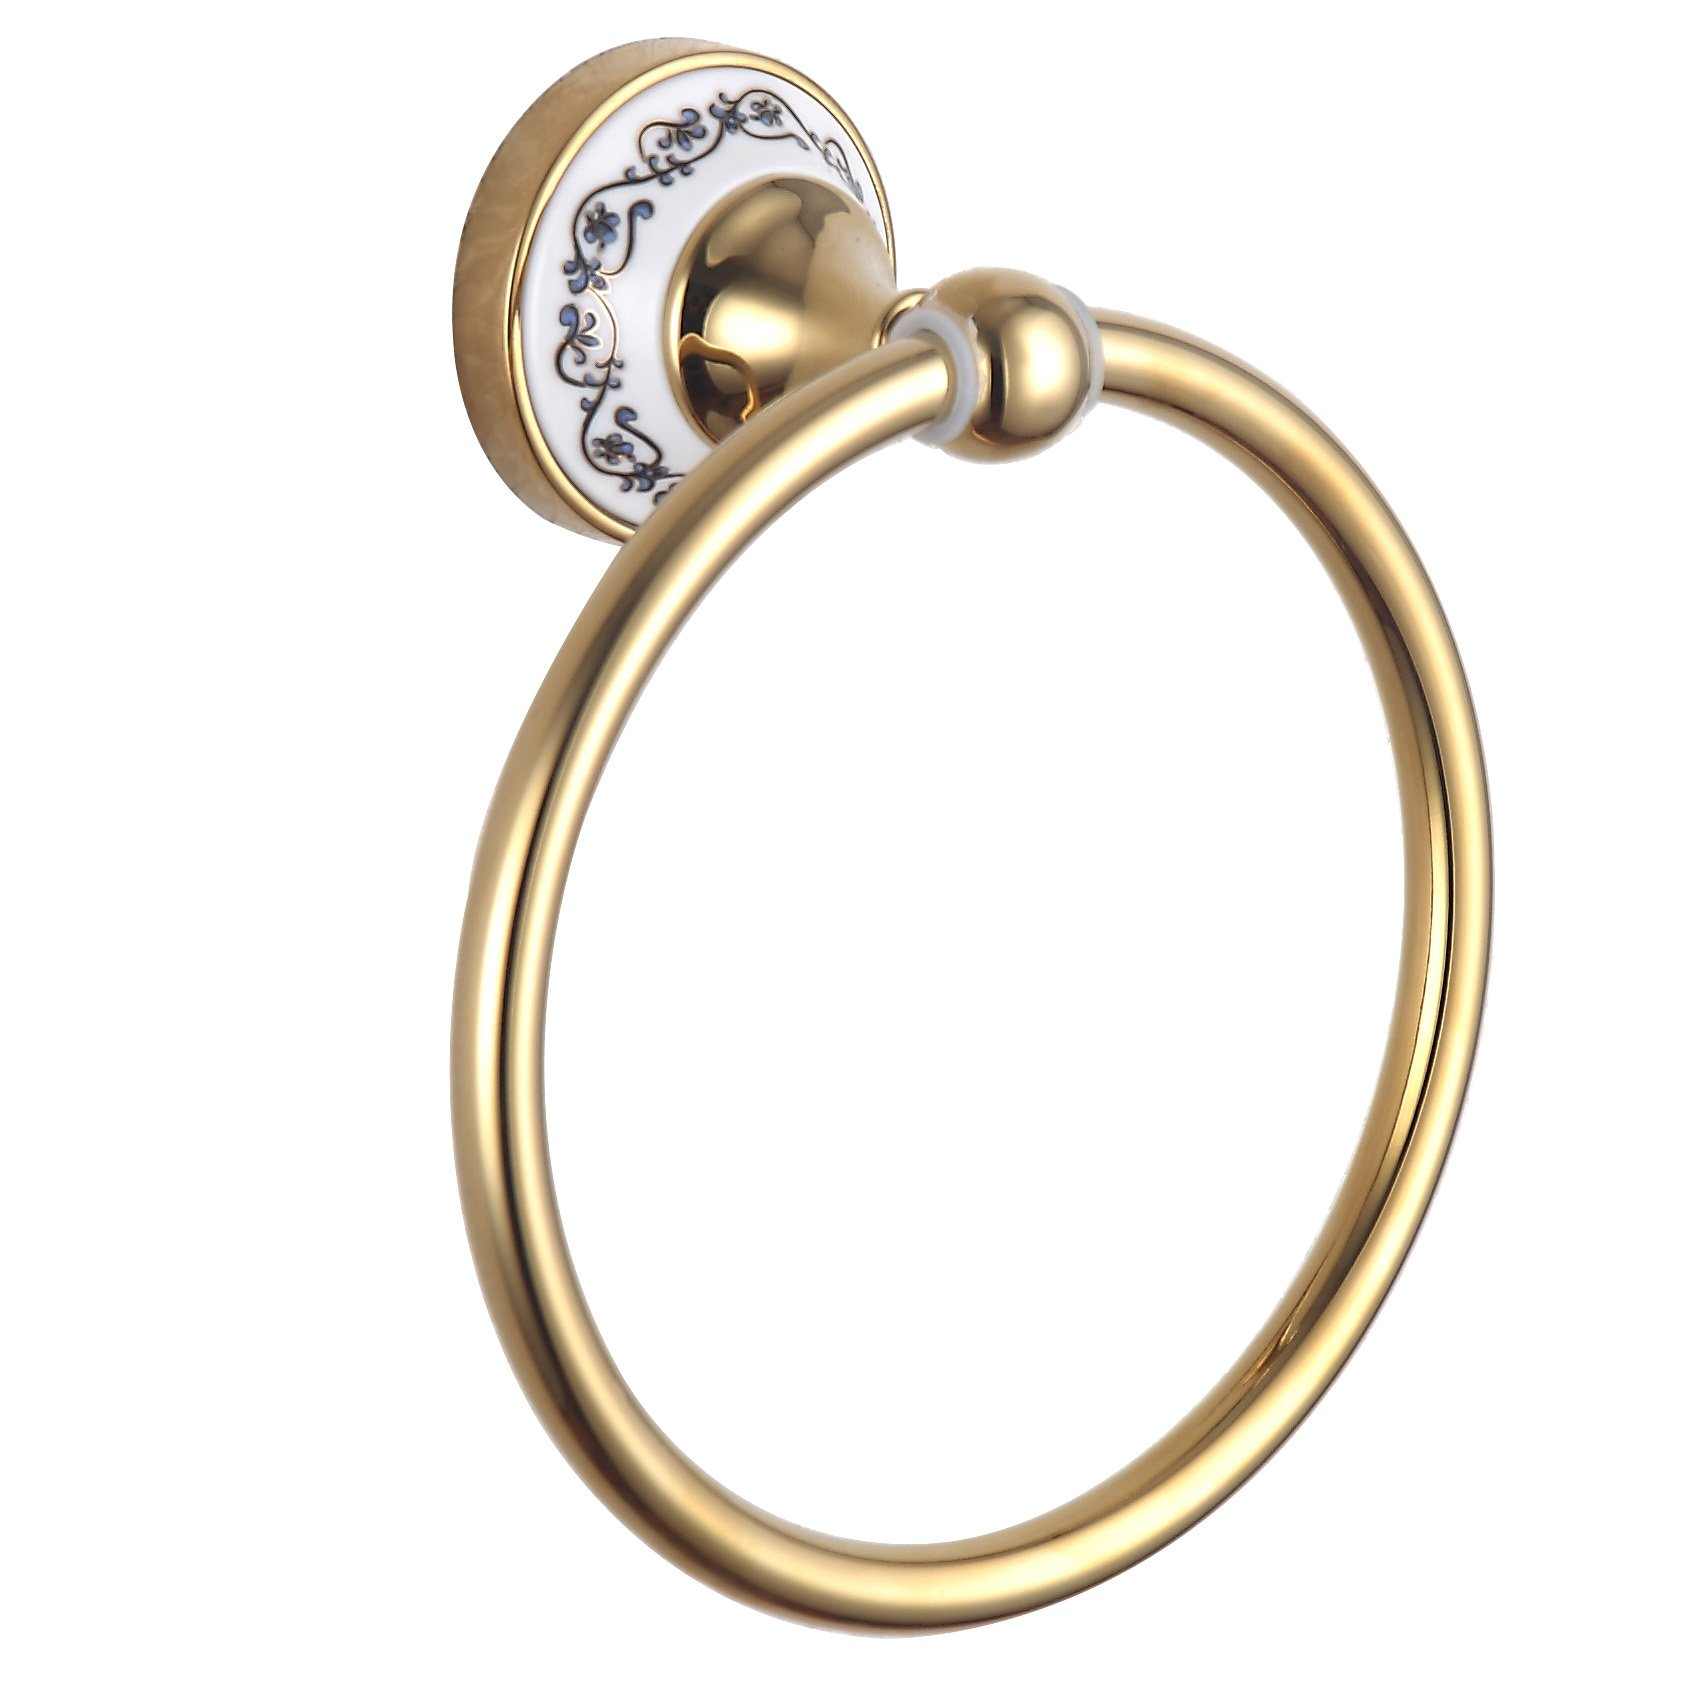 Cloud Power Wall-mounted Towel Rings Brass Towel Rings Holder With Towel Rings Porcelain Decorated For Bathroom Titanium